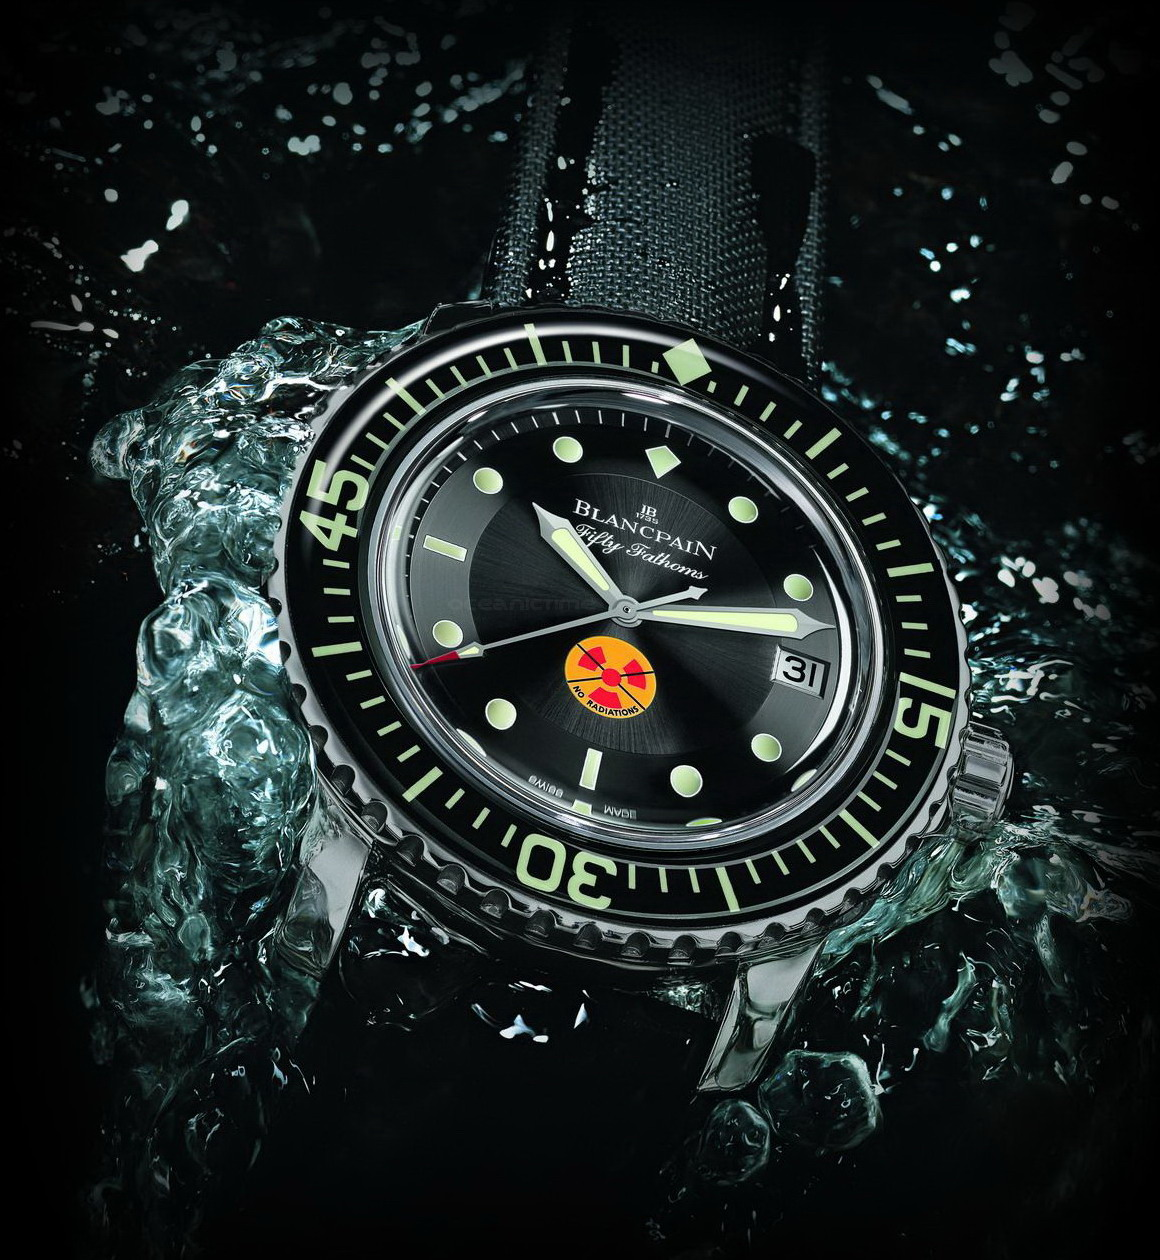 Vuestro favorito del día - Página 39 BLANCPAIN+Tribute+to+Fifty+Fathoms+(water)